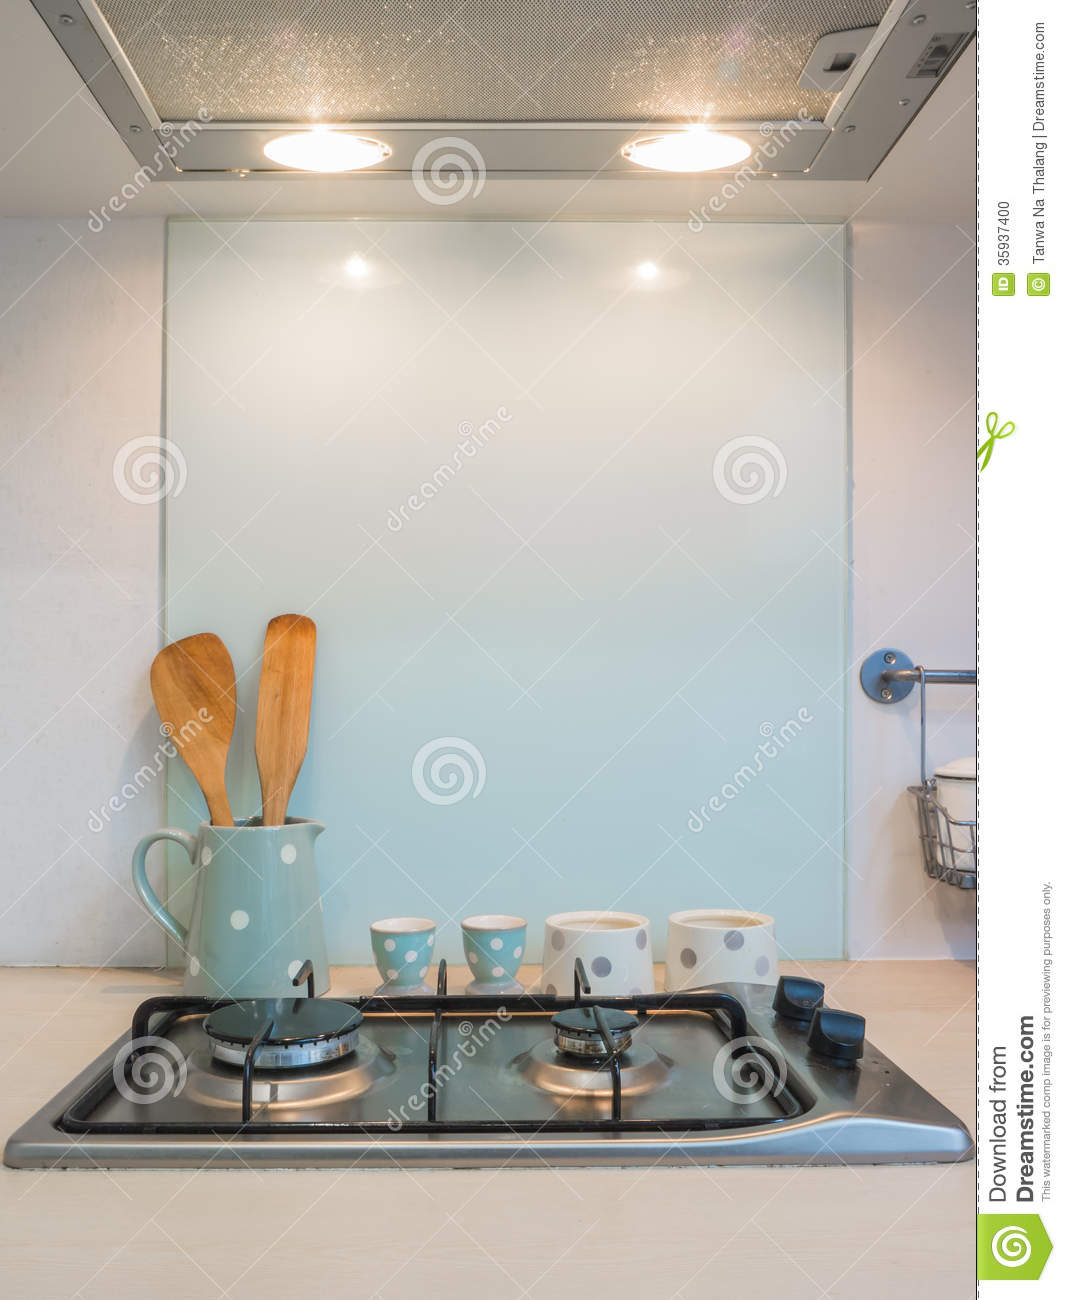 Kitchen Bar With Stove: Kitchen , Counter Of Stove Cooking. Stock Photo